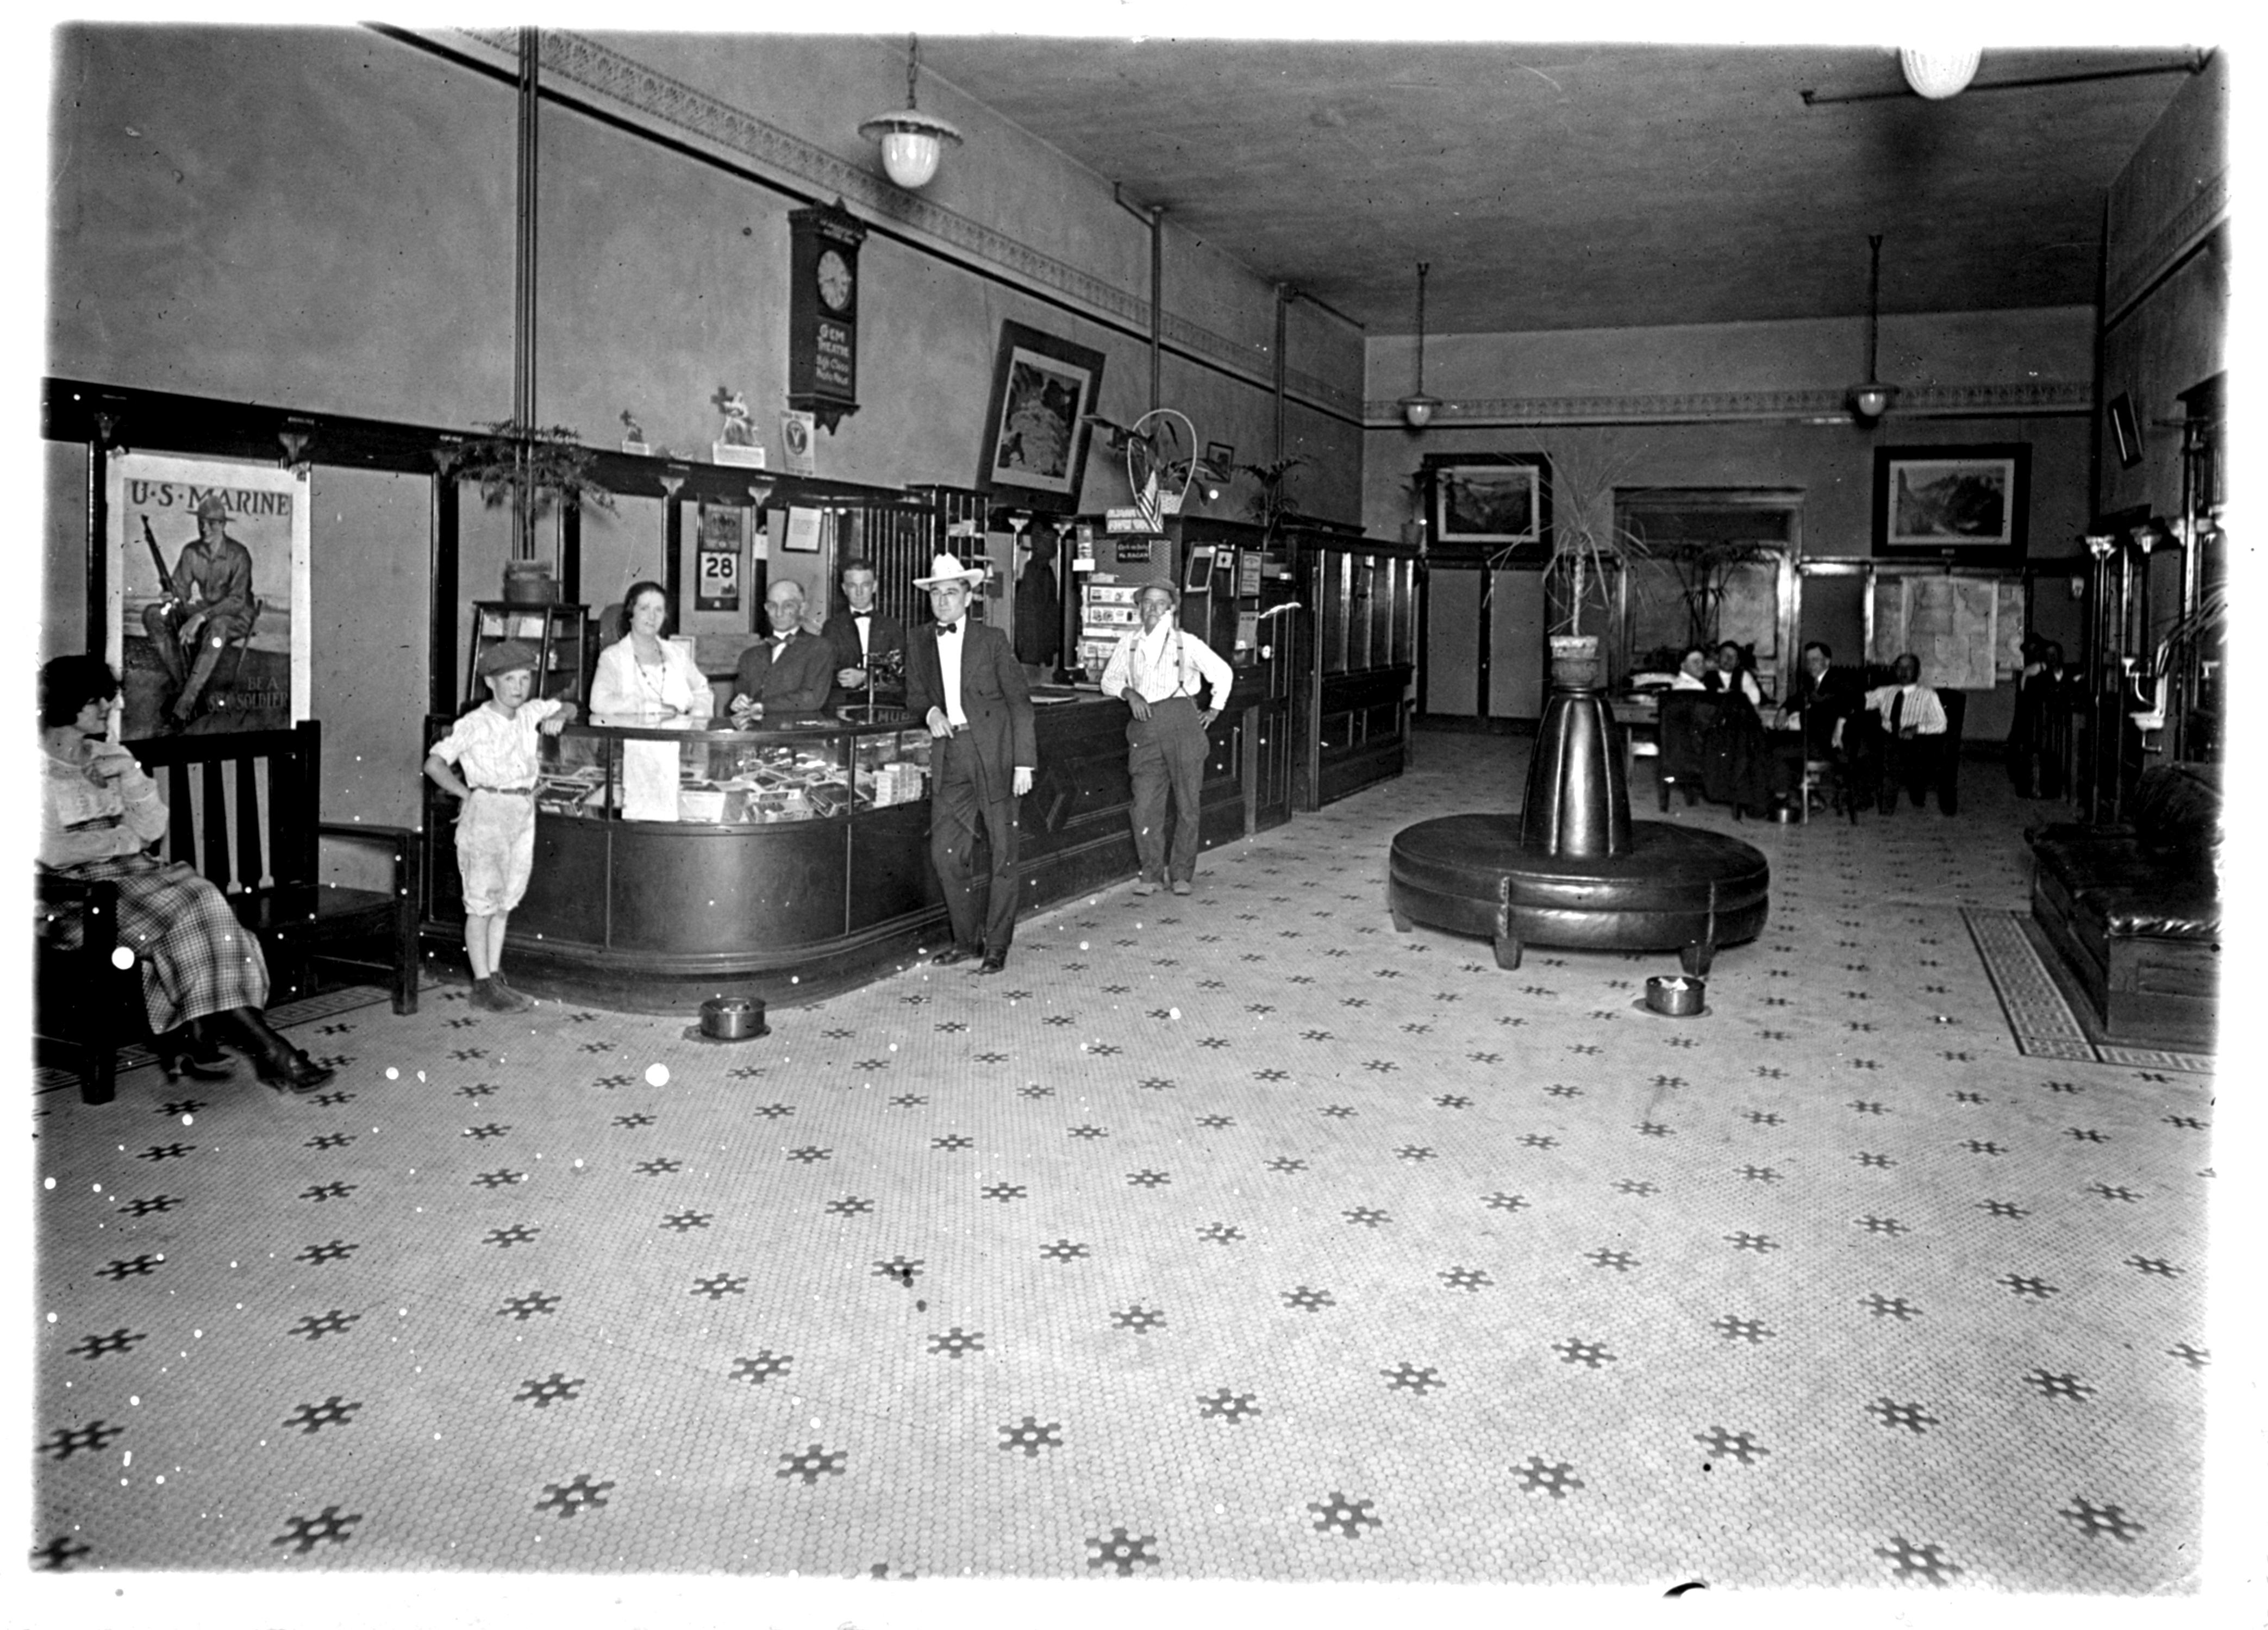 Photo of the lobby of the Wenatchee Hotel, persons unidentified.  The hotel operated from 1910 - 1965.